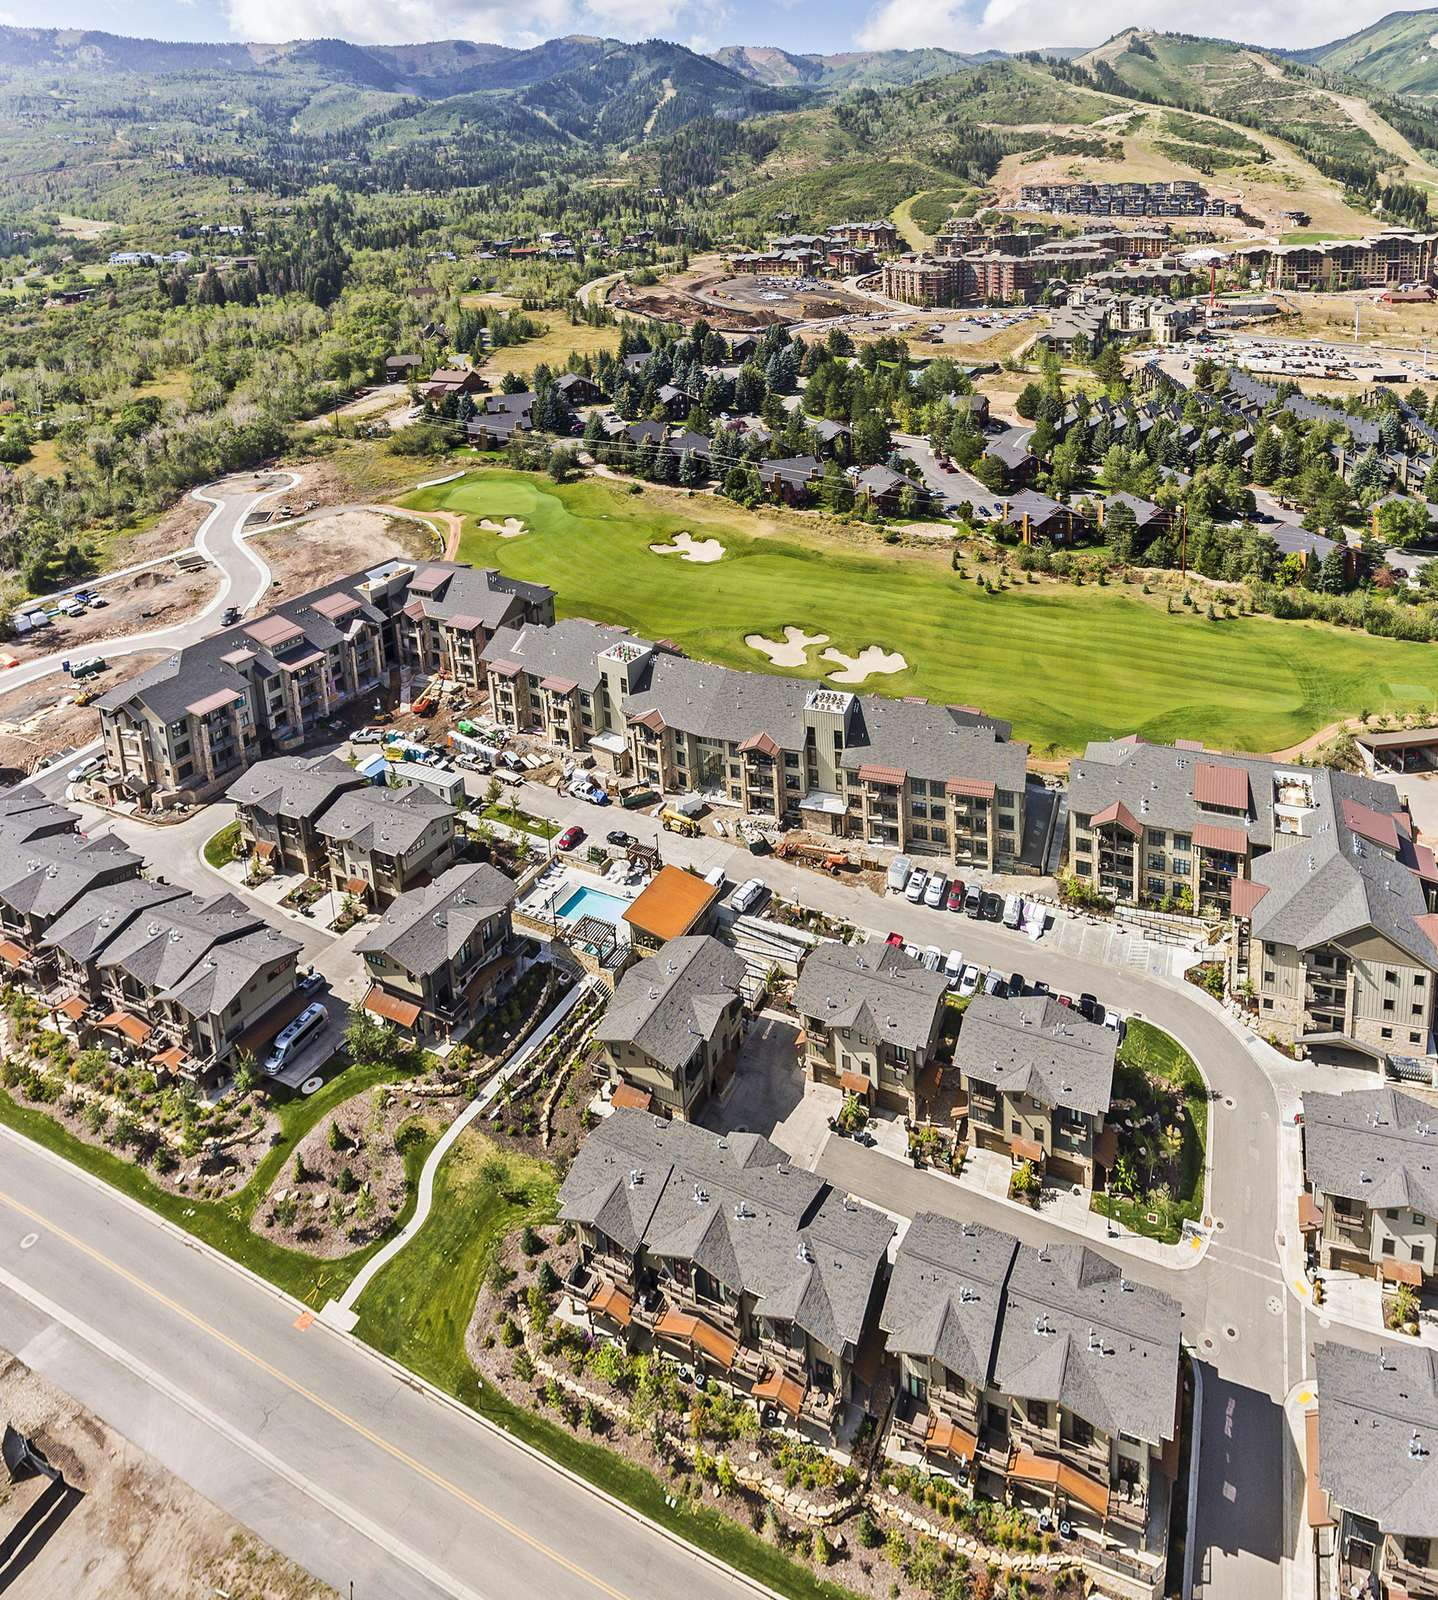 Aerial view of the condo development, golf course, and ski resort